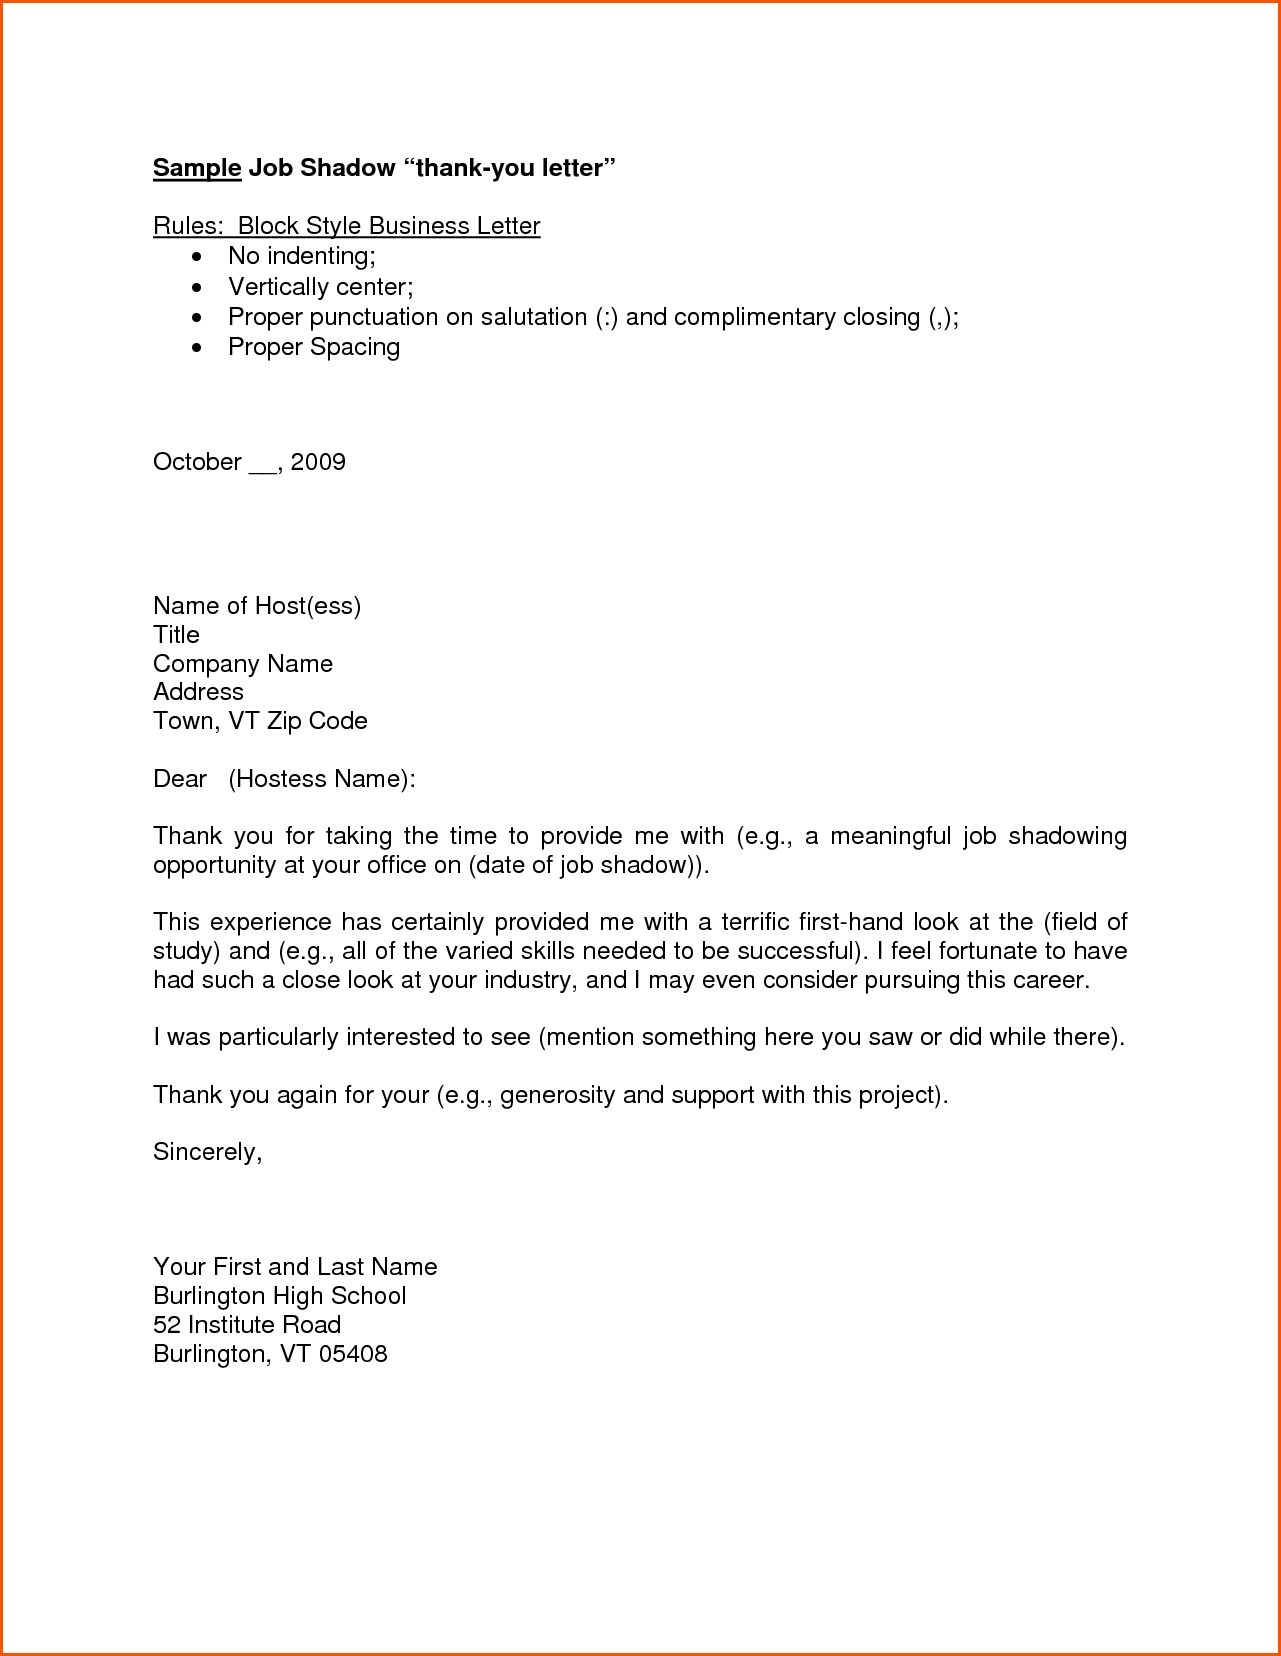 business letter spacing template design after date sample biodata format within best free home design idea inspiration - Cover Letter Spacing